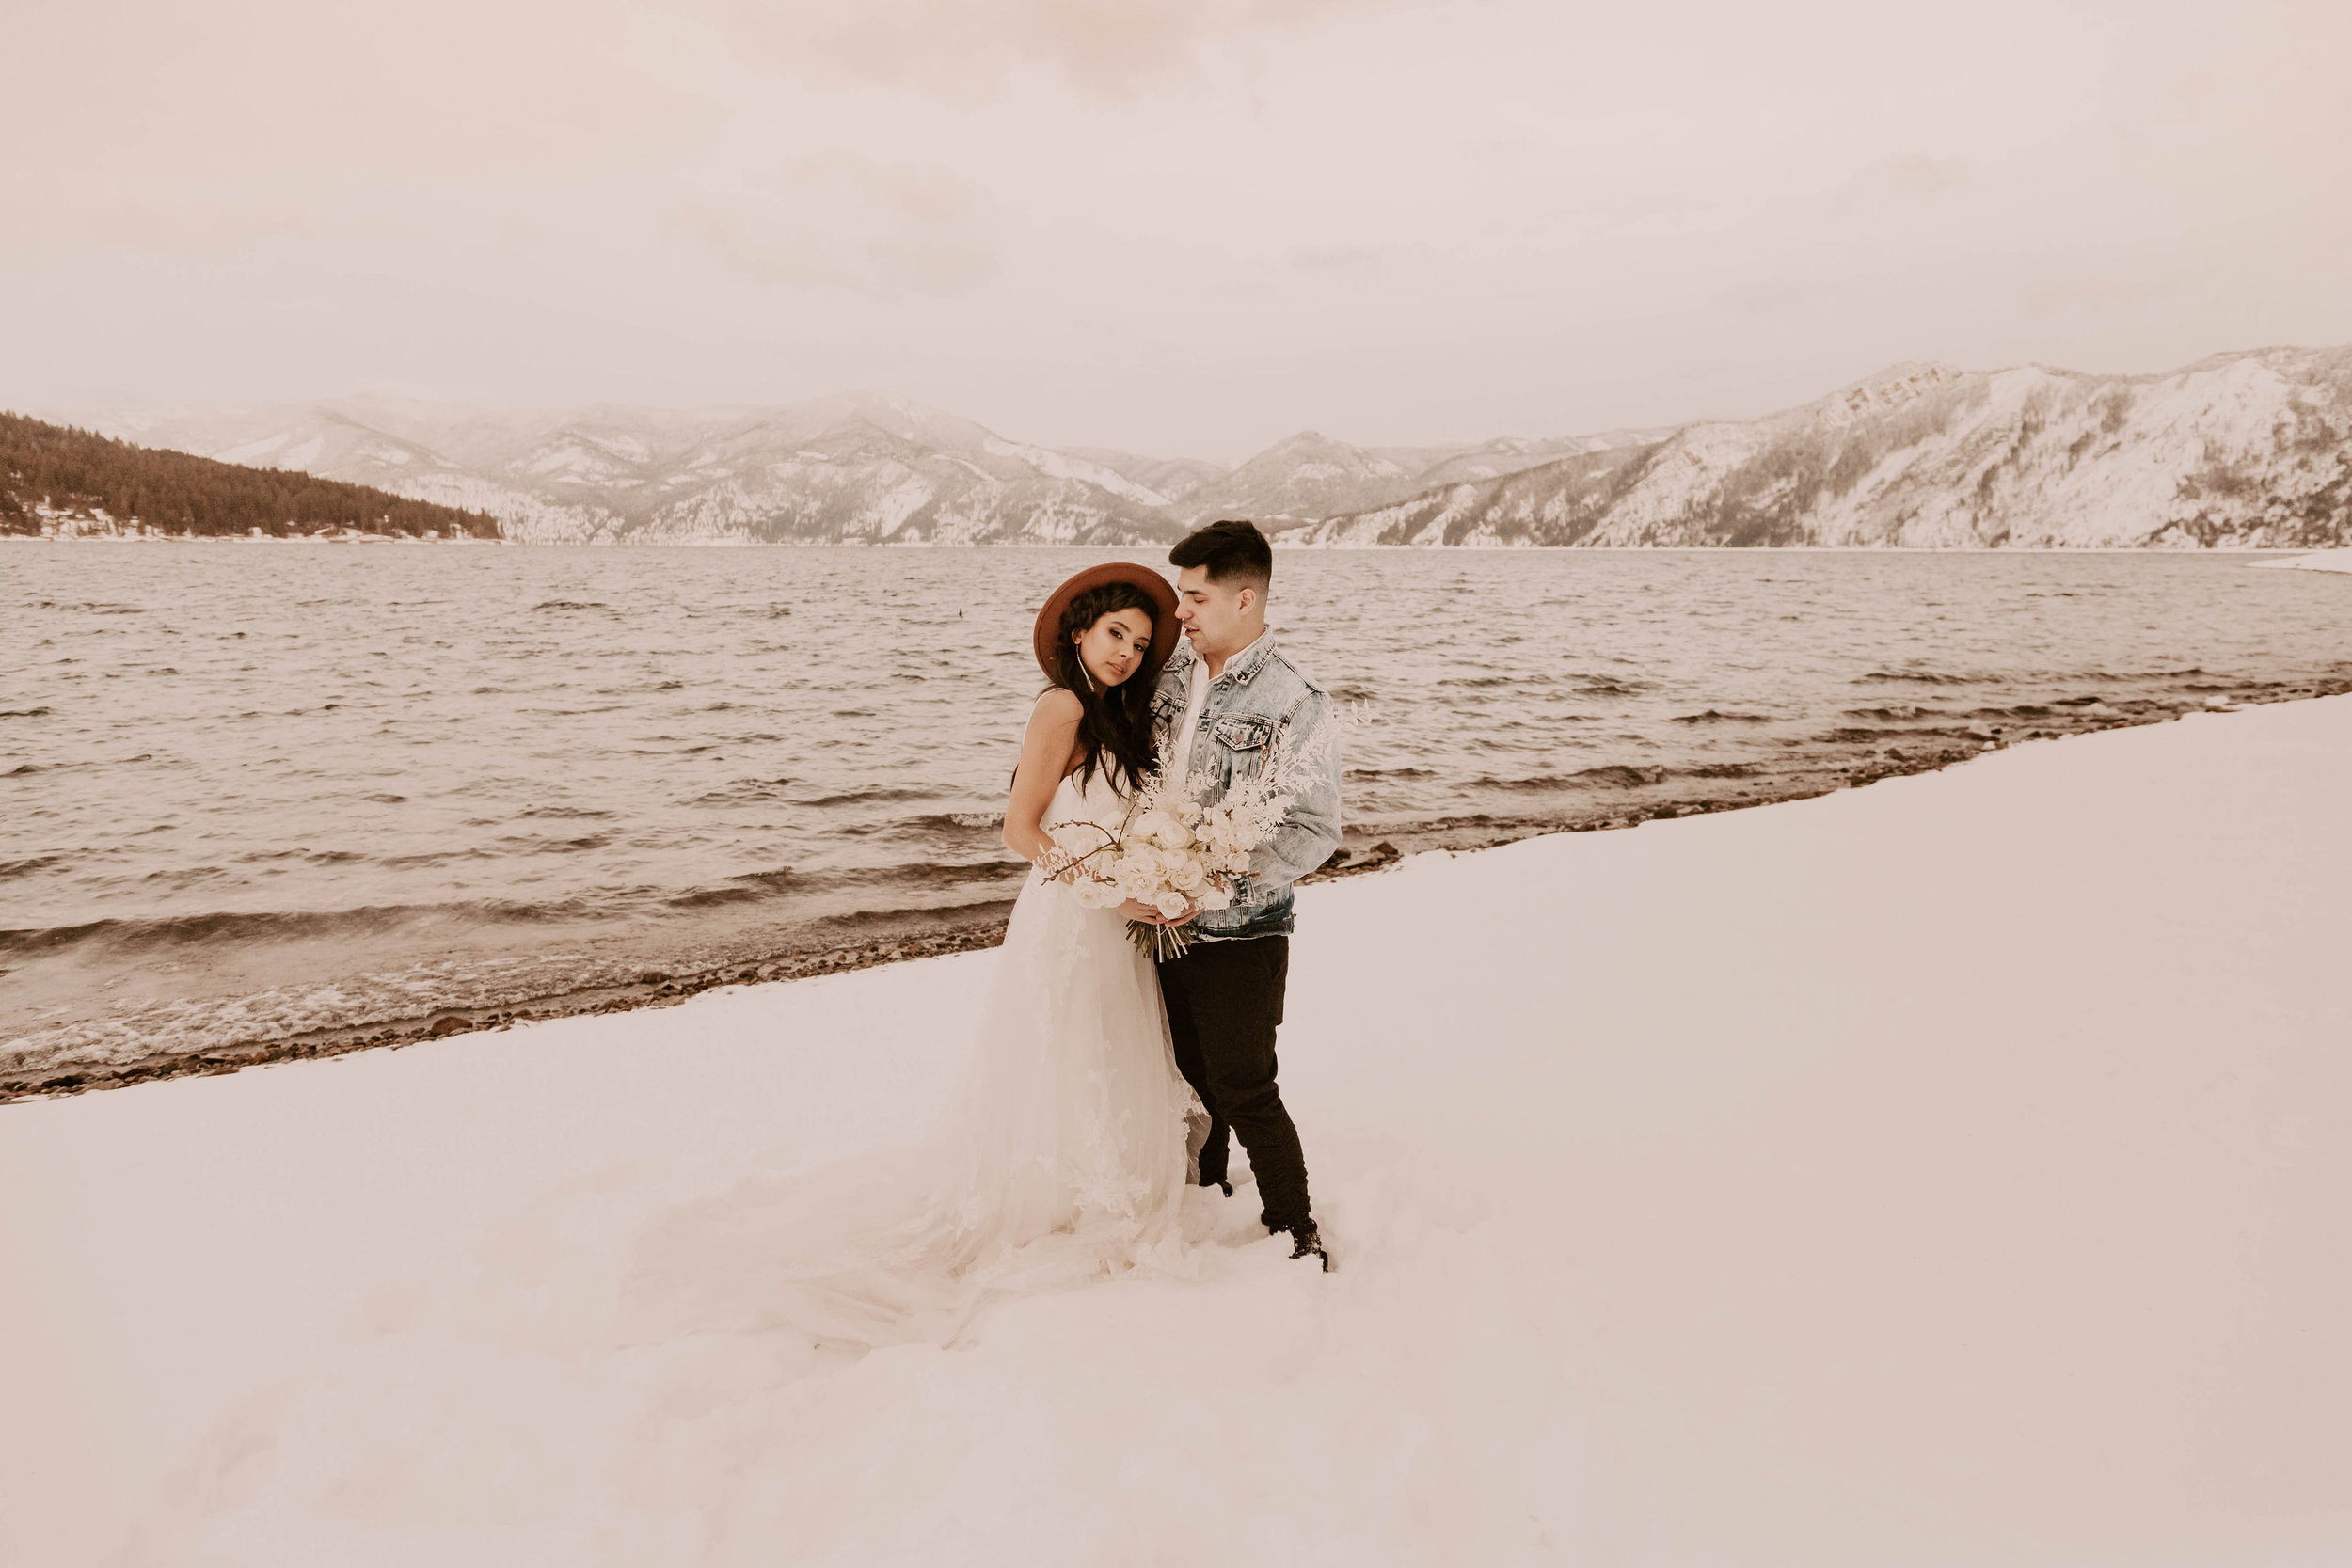 winter couple wedding spokane dress